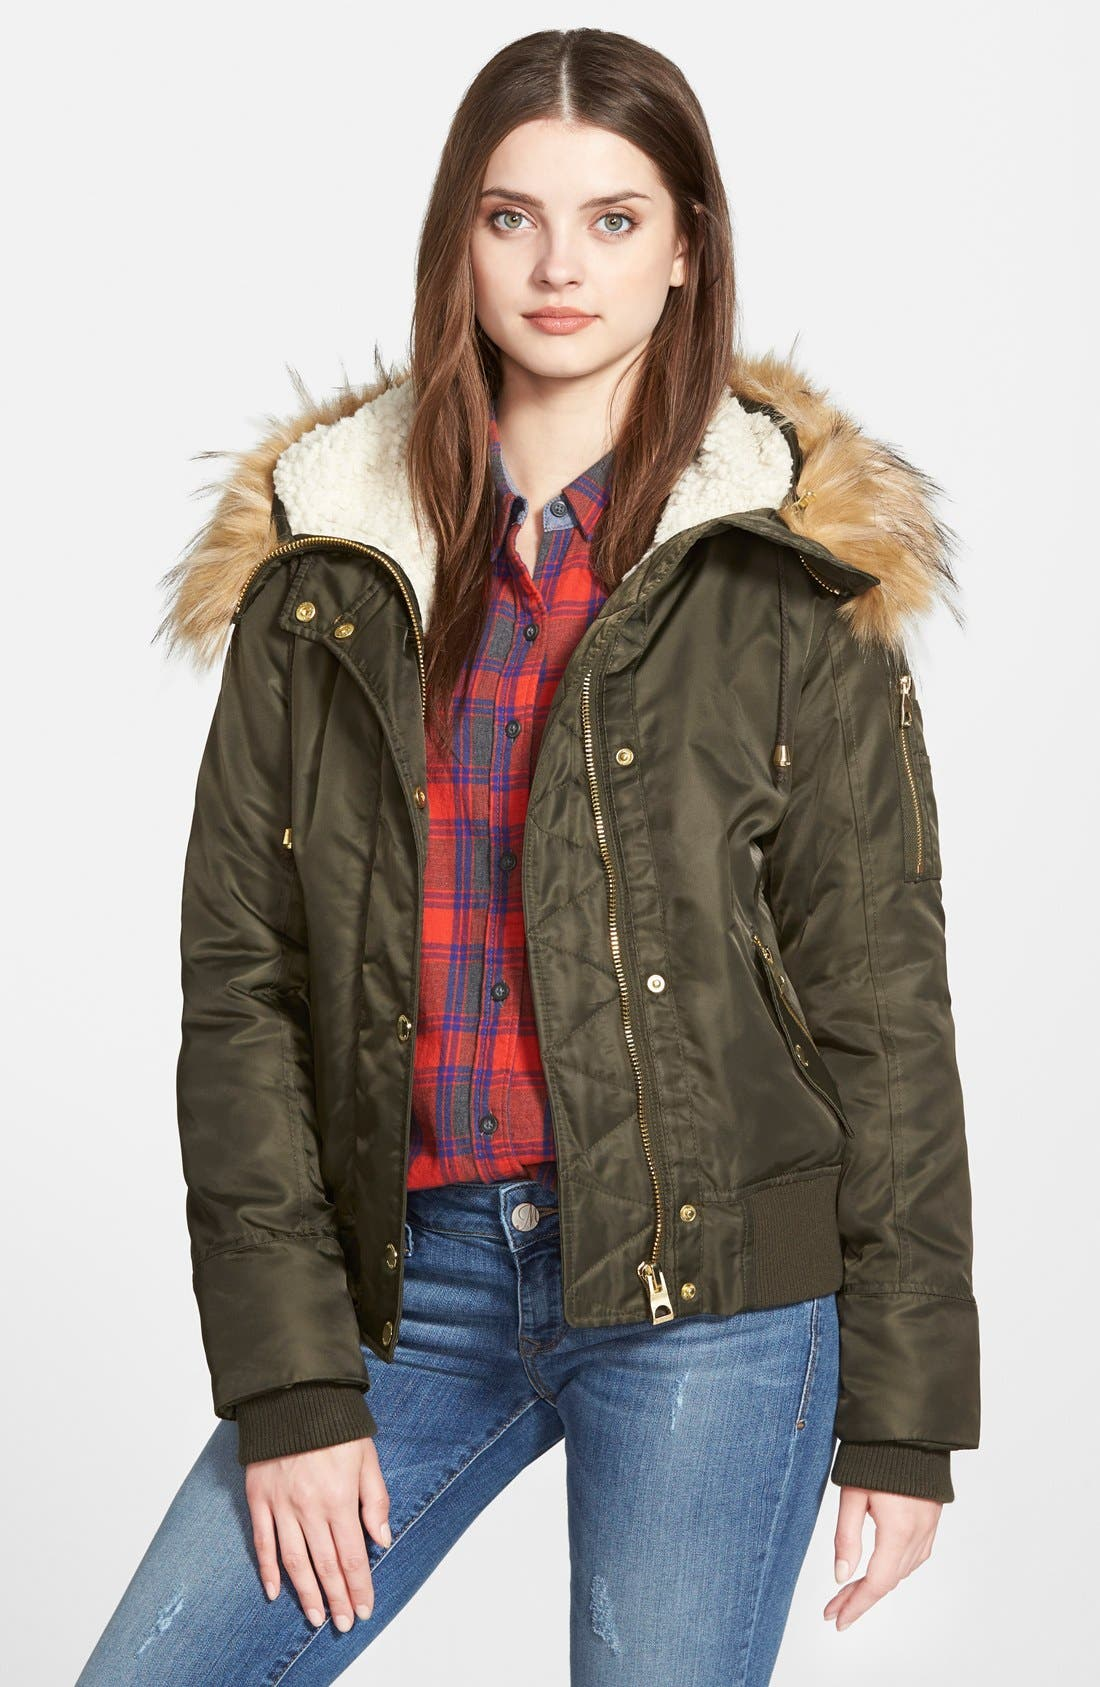 Main Image - GUESS Hooded Satin Bomber Jacket with Faux Fur Trim & Faux Shearling Lining